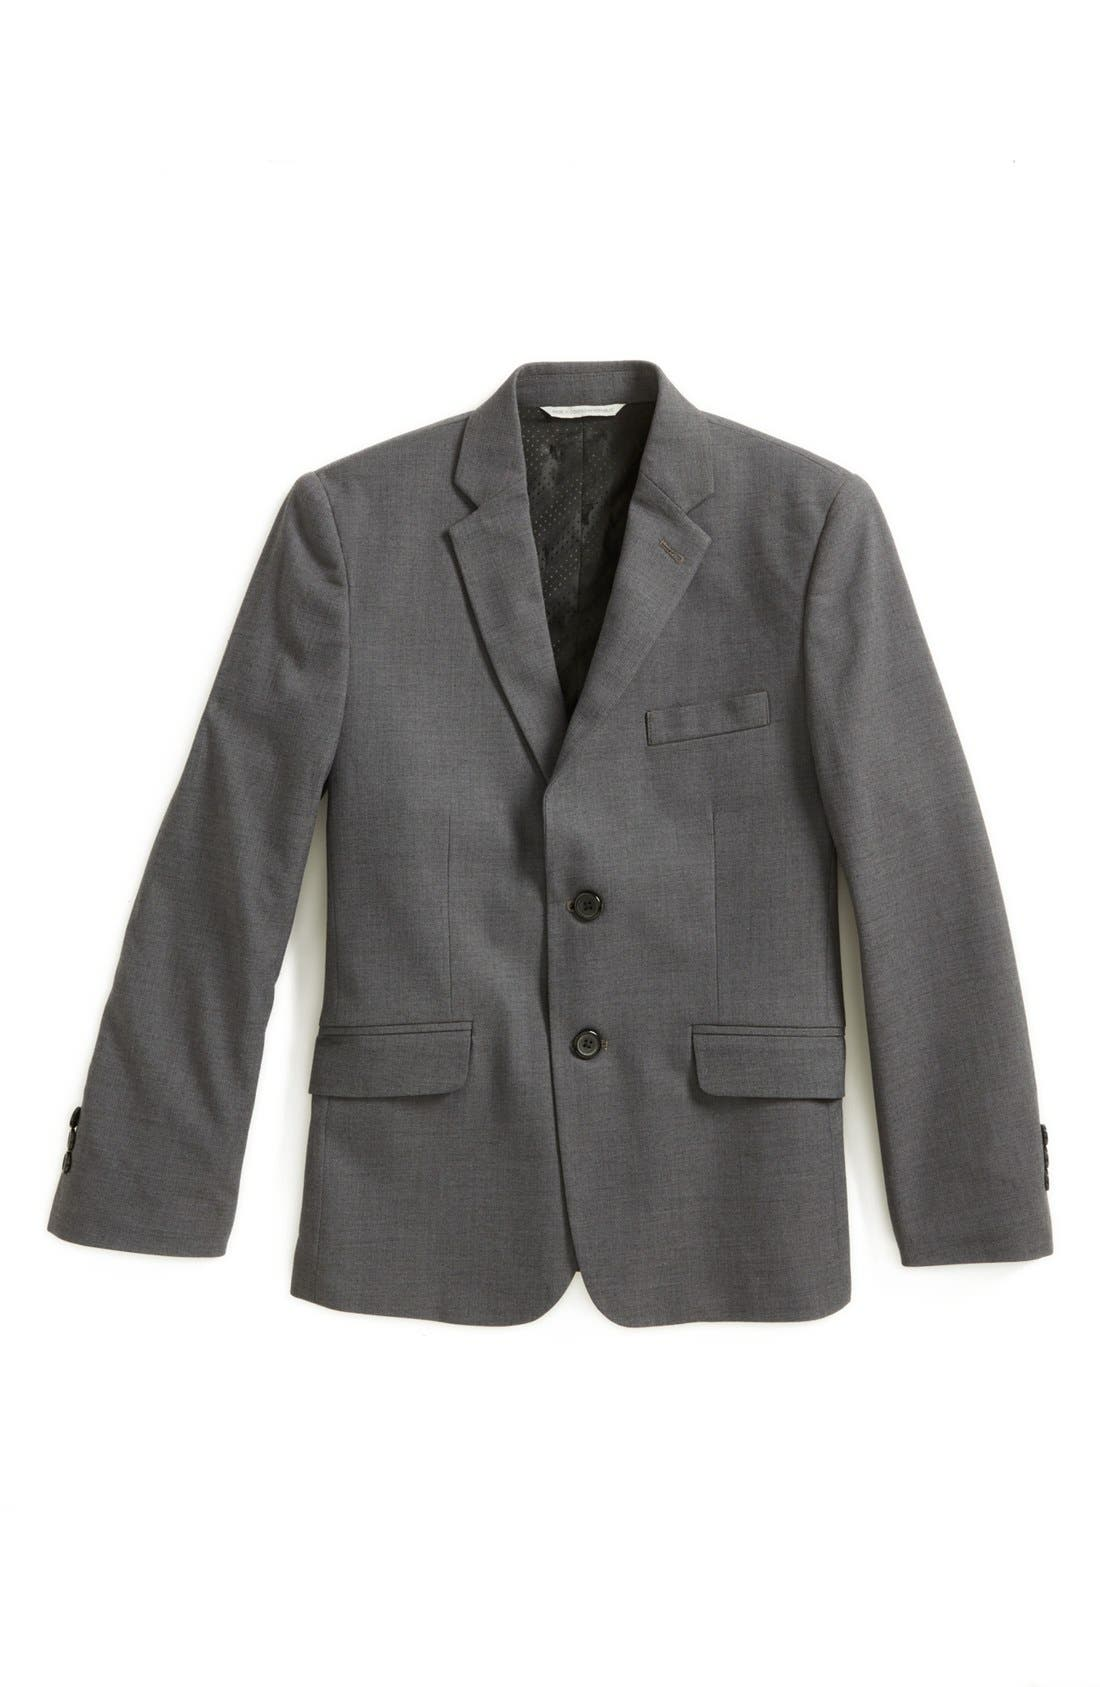 Main Image - C2 by Calibrate 'Caleb' Sharkskin Jacket (Big Boys)